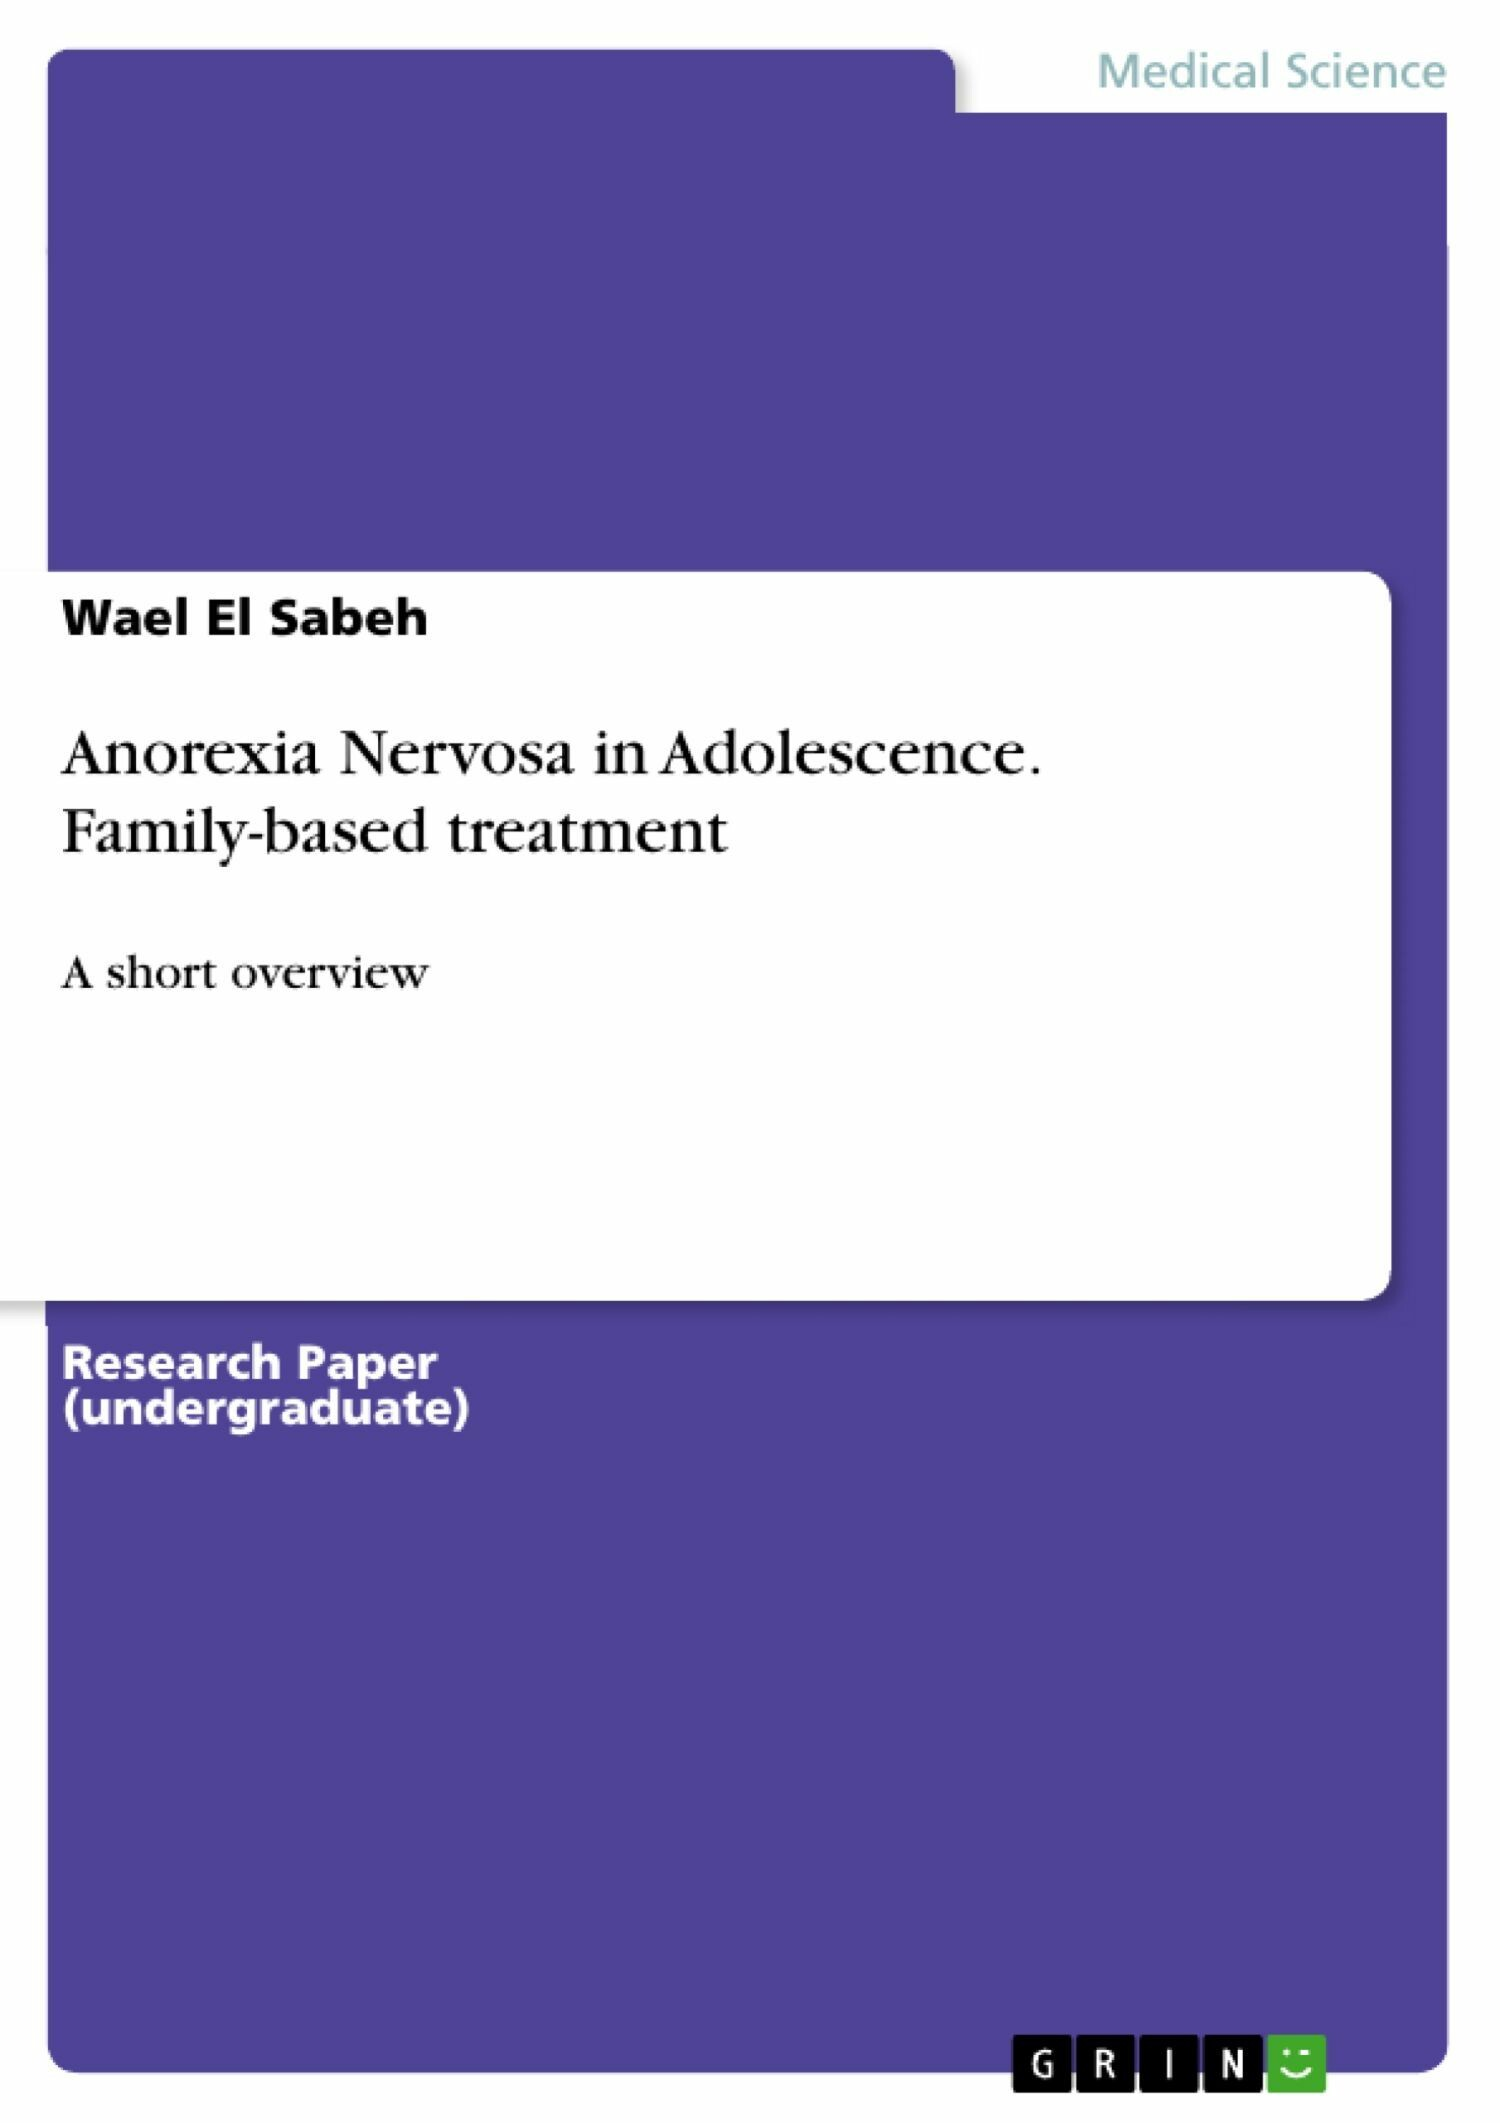 Anorexia Nervosa in Adolescence. Family-based treatment